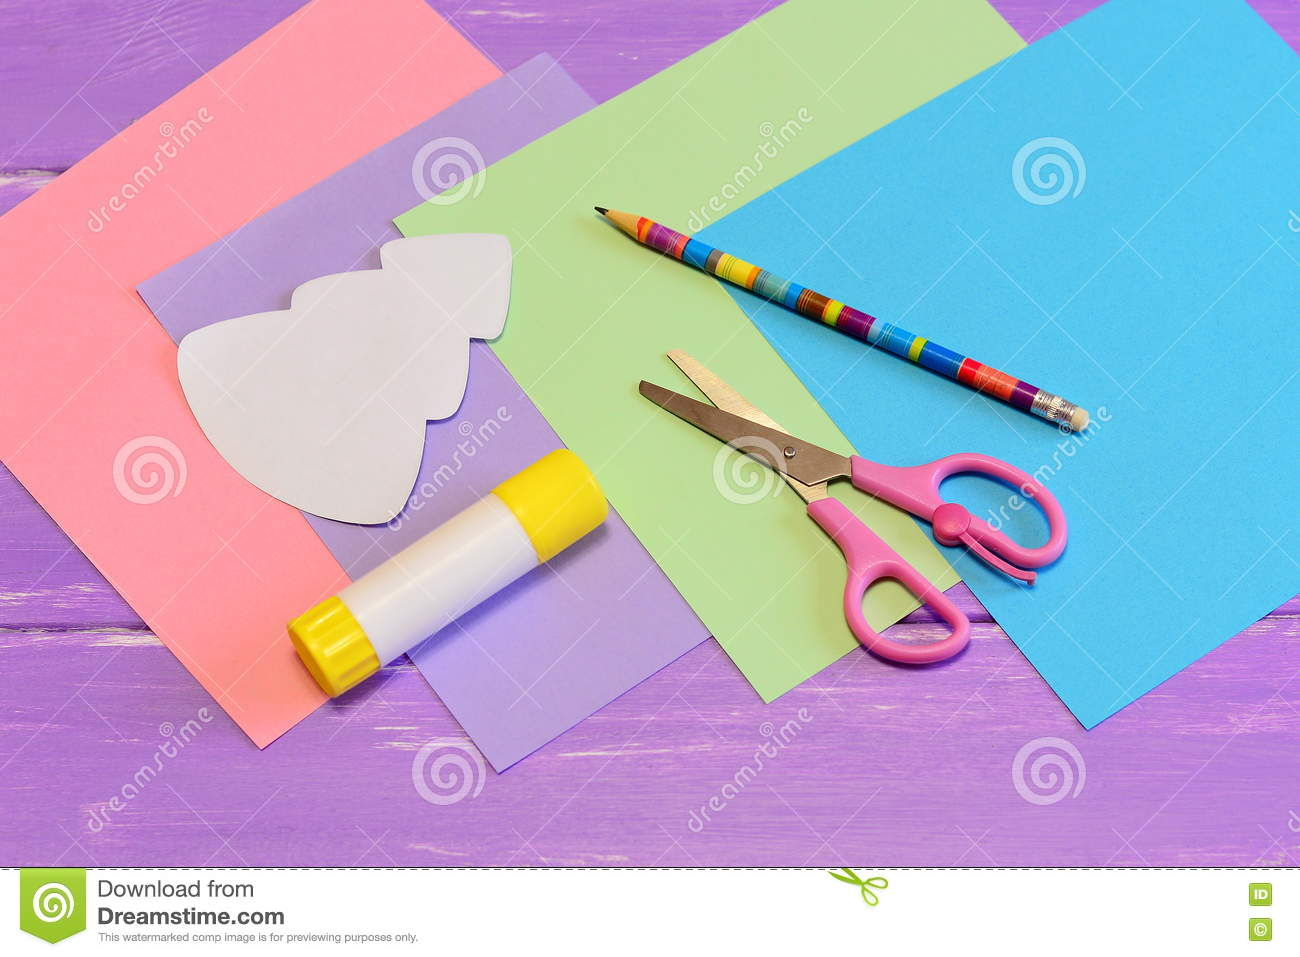 stationery to create a christmas greeting card from colored paper scissors glue stick